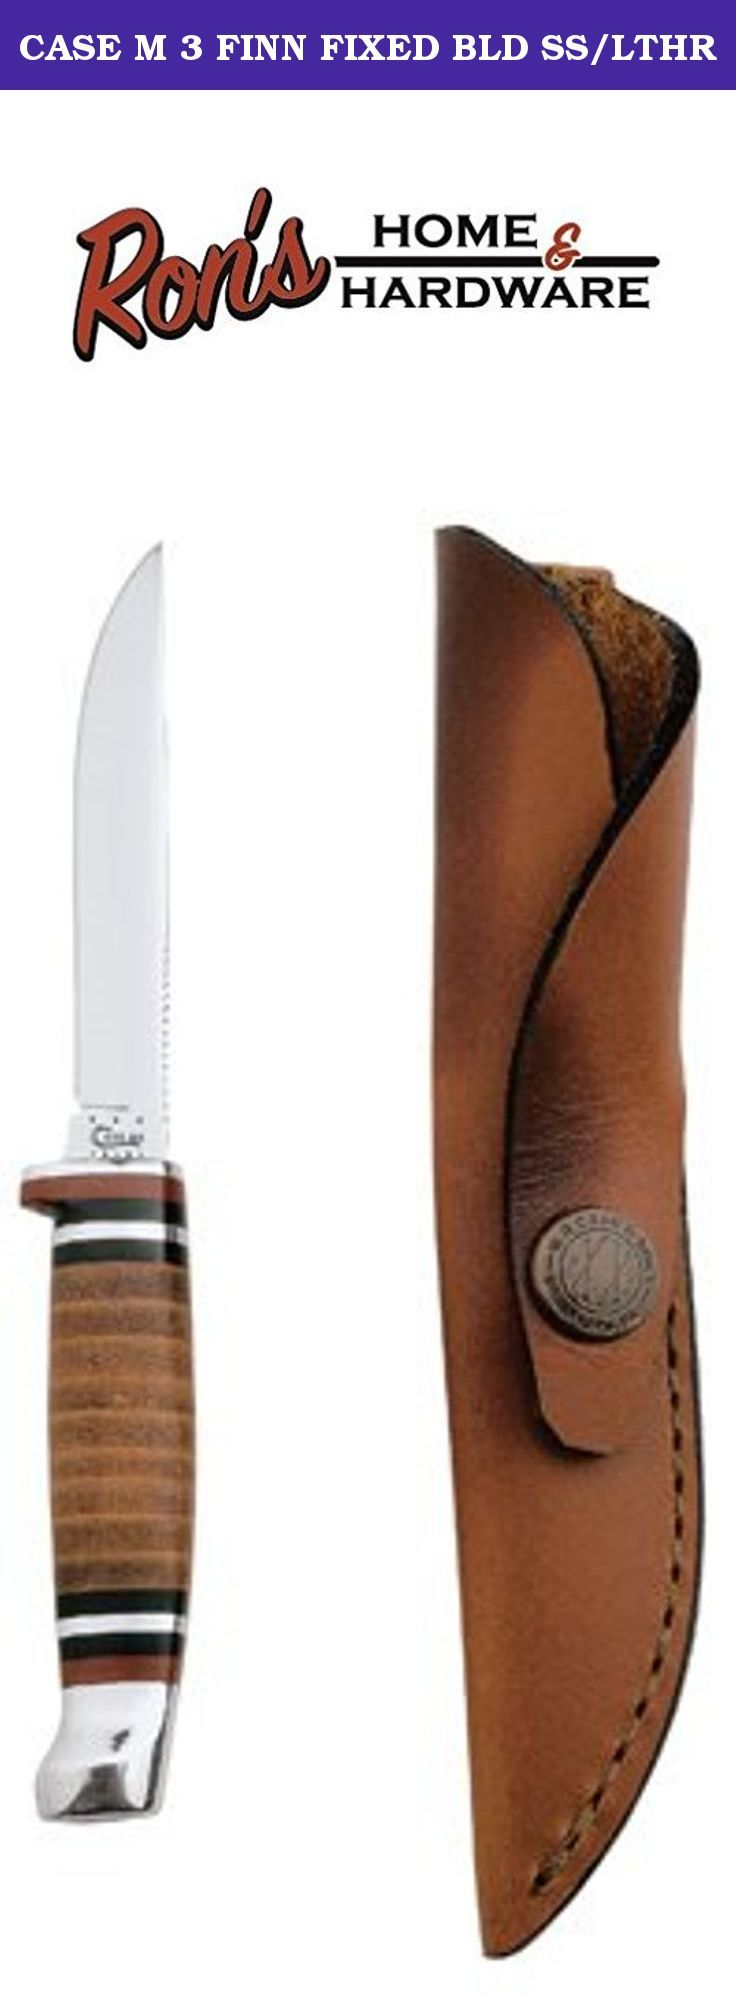 """CASE M 3 FINN FIXED BLD SS/LTHR. M3FINN SS, Small, Leather Hunter, Single Blade, Knife, Features Polished Leather Handle With Genuine Leather Sheath, Mirror-Polished Concave Ground 3-1/8"""" Clip Blade, Overall Length 6-1/2"""", 2.5 OZ, Blade Length 3.20""""."""